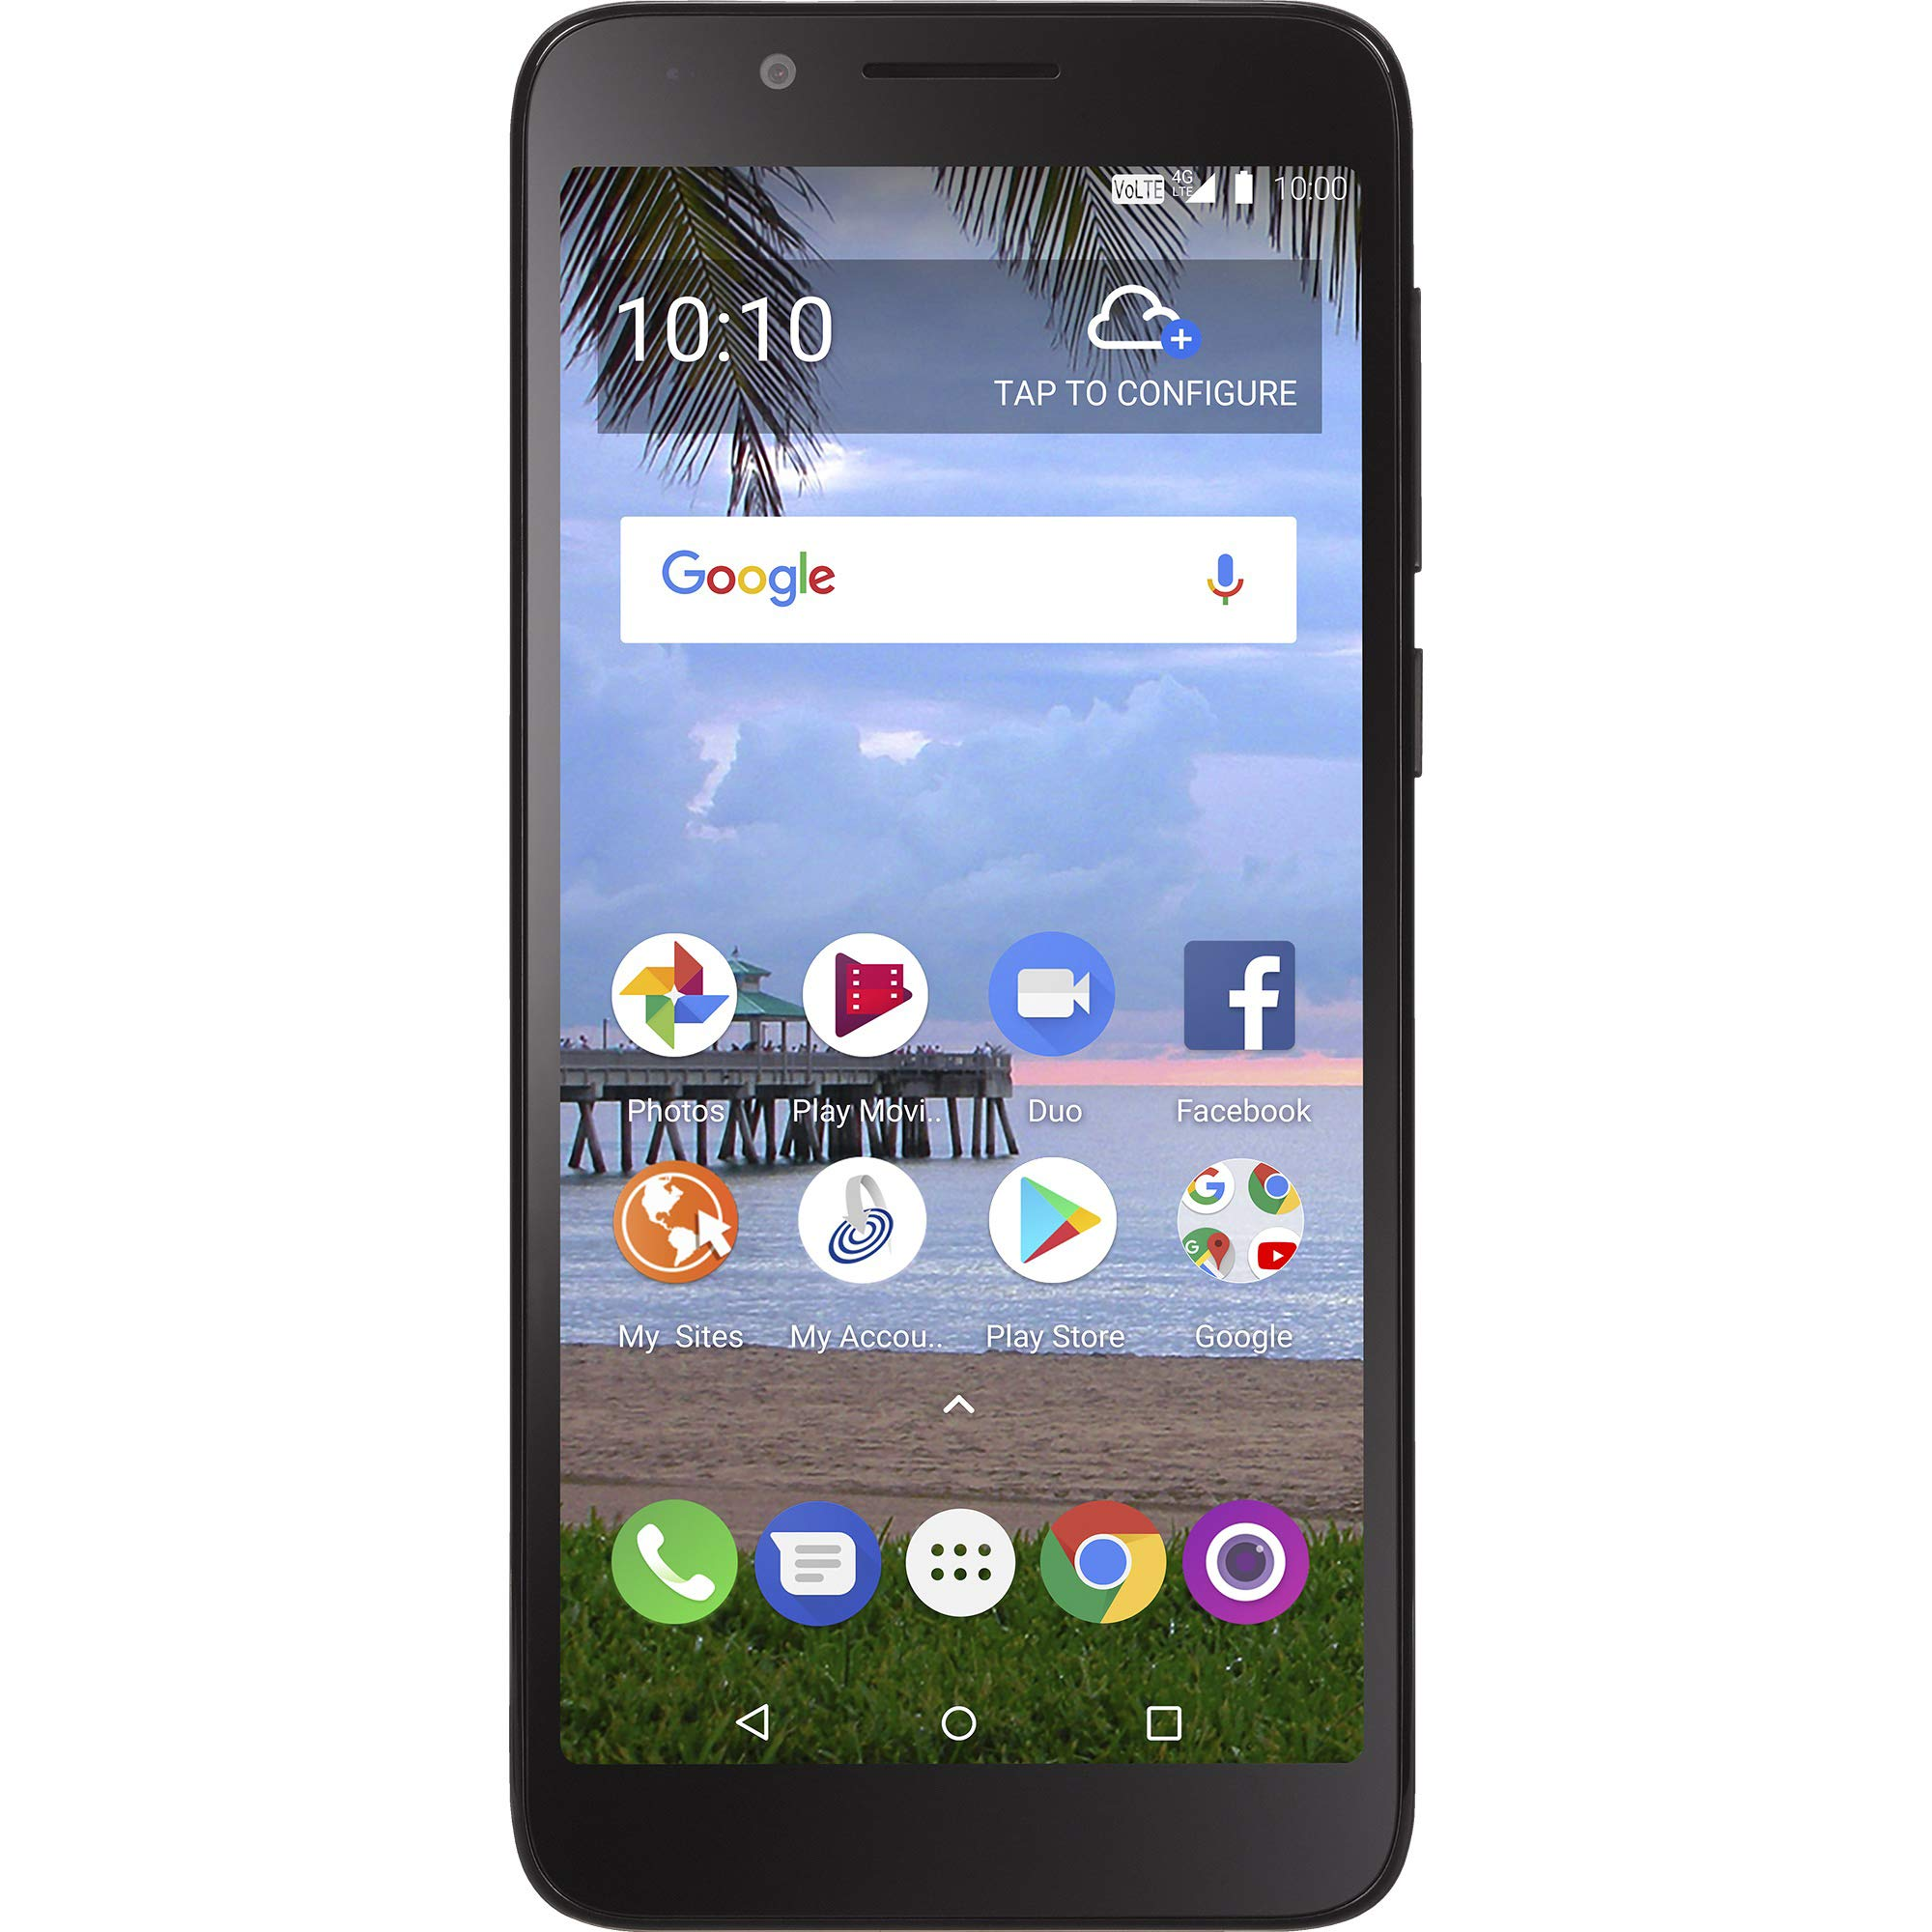 TracFone TCL LX 4G LTE Prepaid Smartphone by TracFone